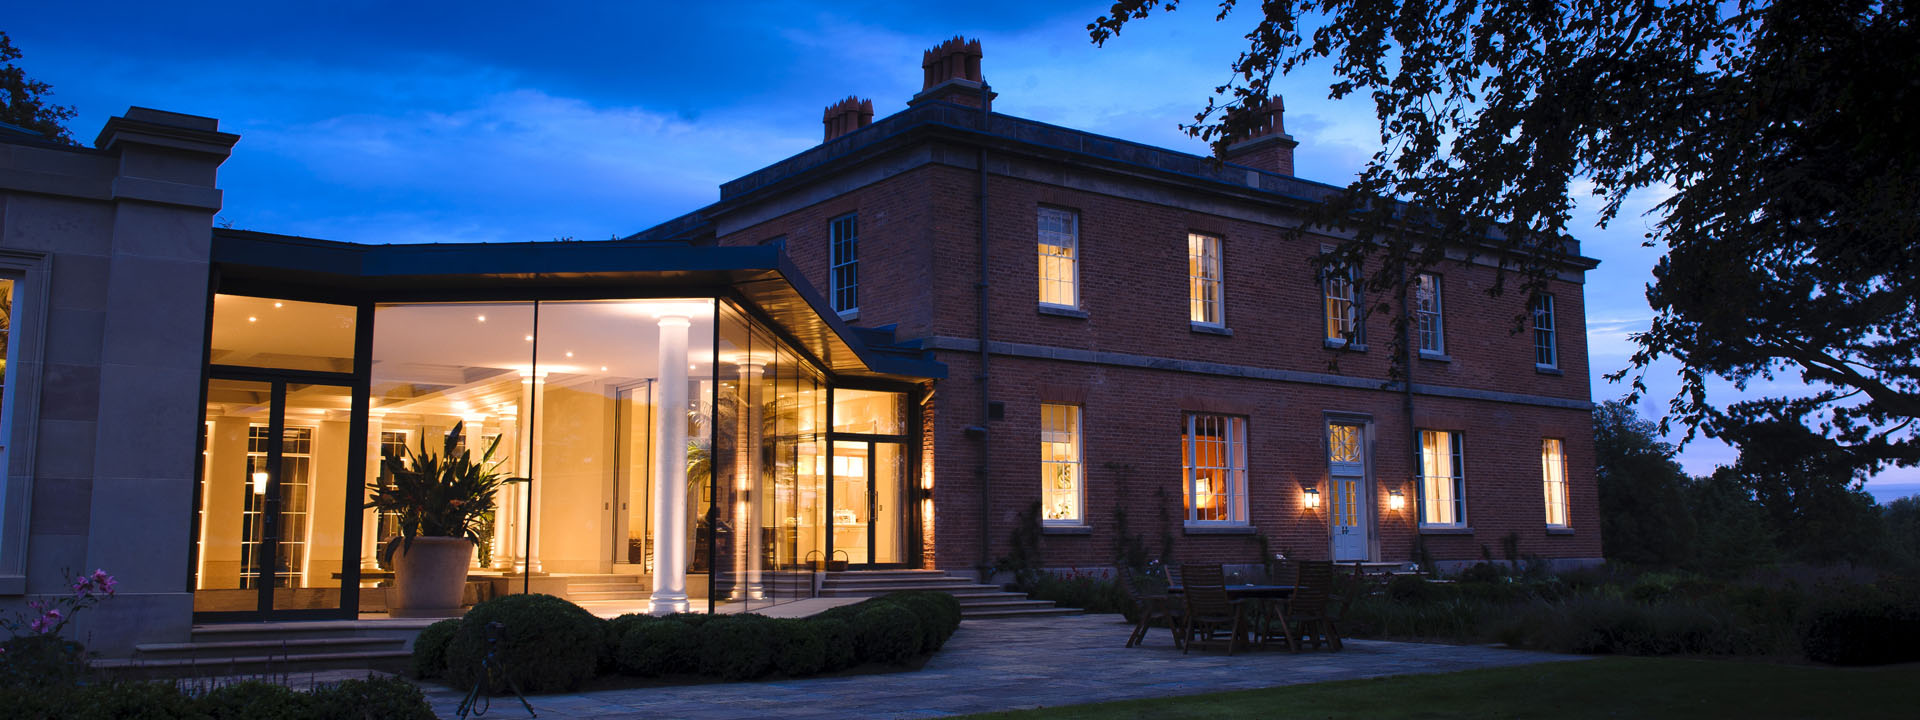 House in cheshire copy bowker sadler architecture for Chesire house